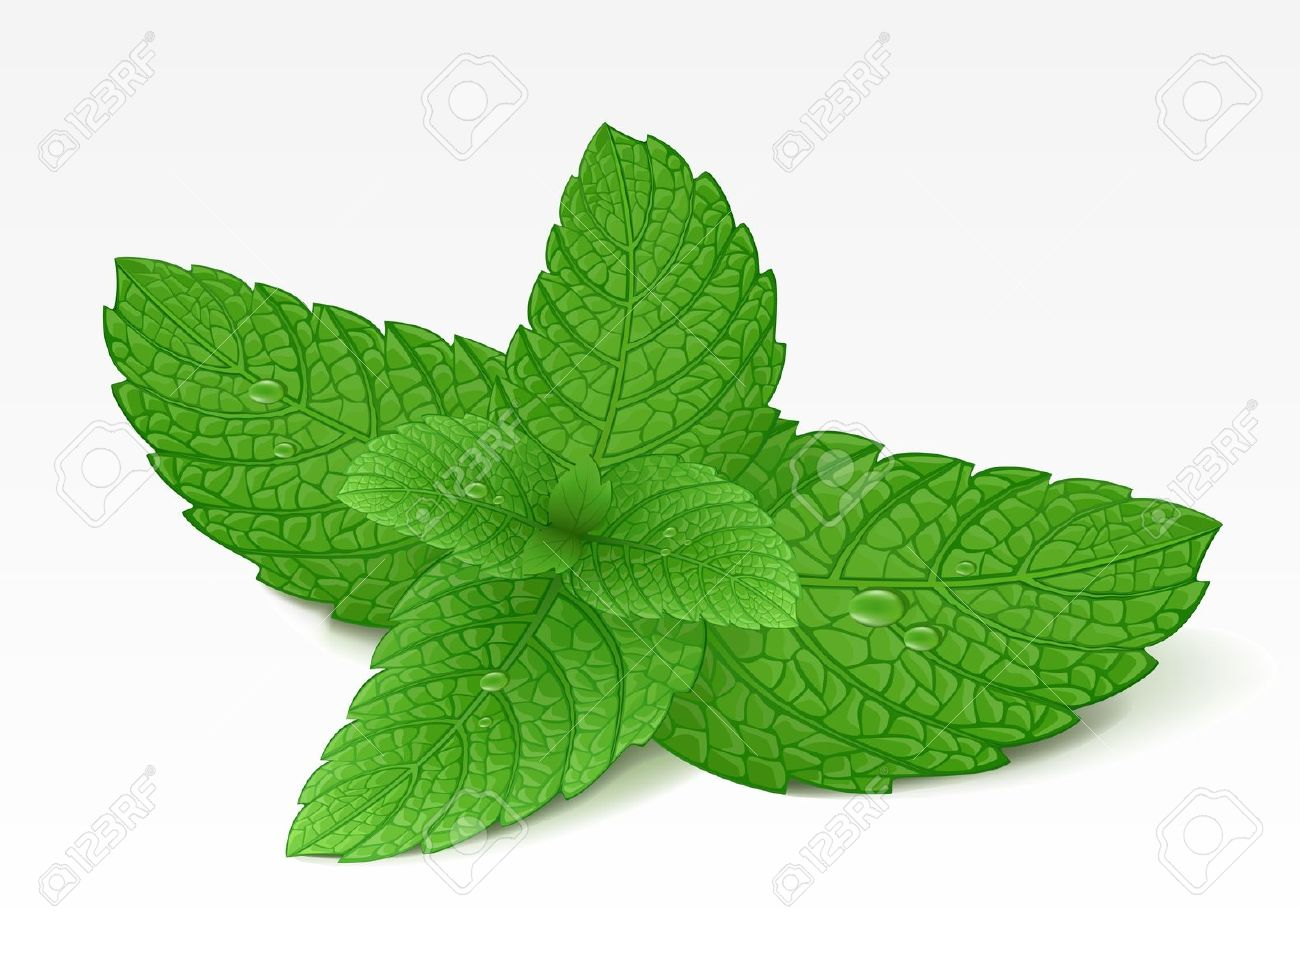 Mint clipart peppermint leaf Essential focusing Oil  the